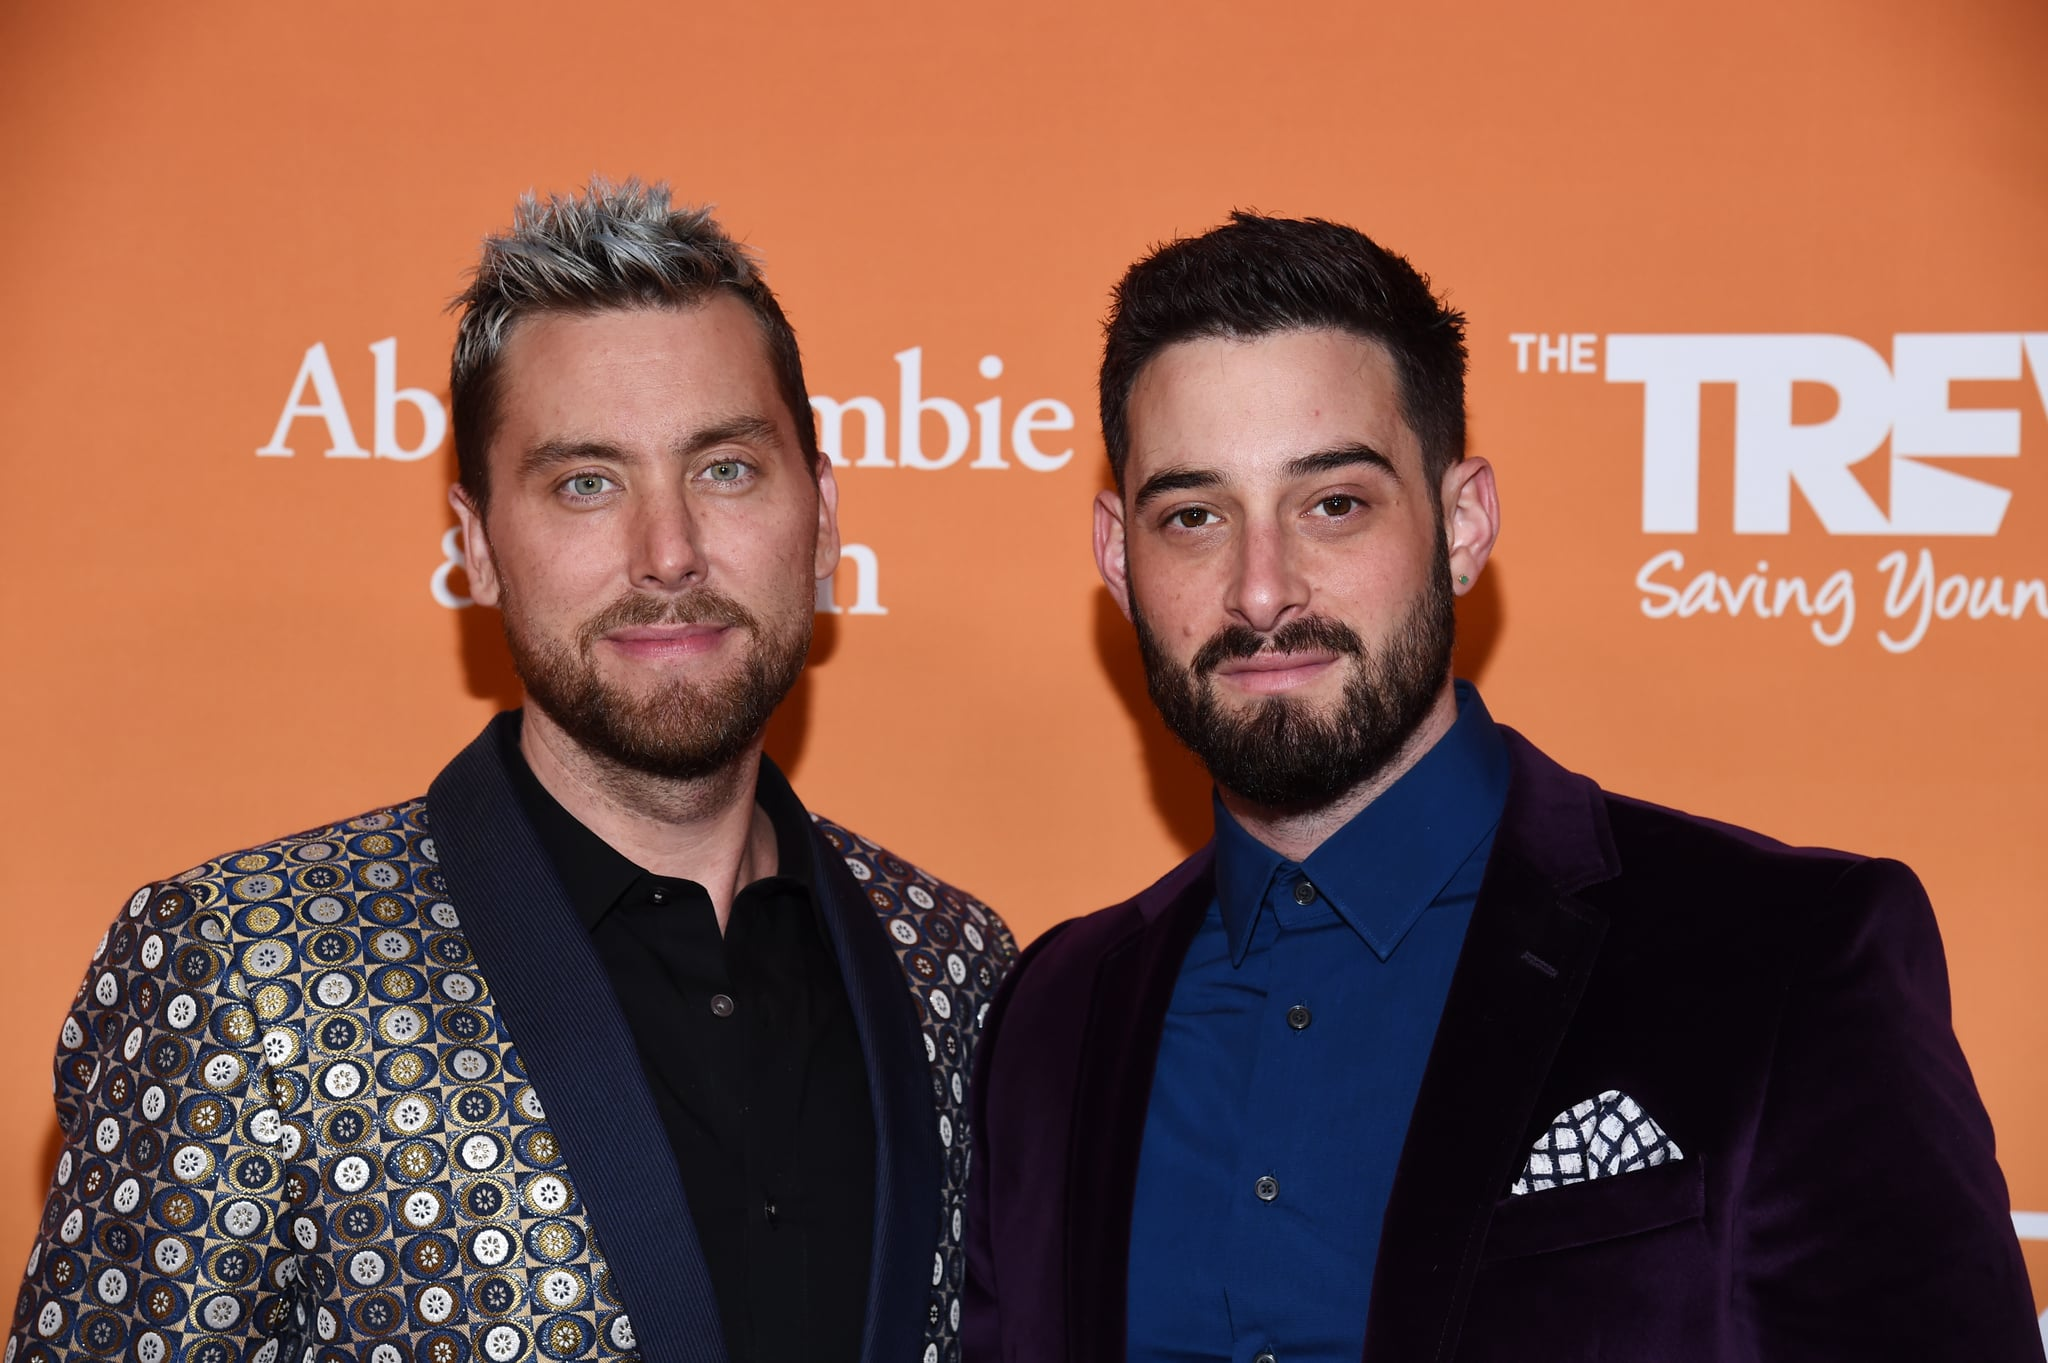 BEVERLY HILLS, CALIFORNIA - NOVEMBER 17: Lance Bass (L) and Michael Turchin arrive at the 2019 TrevorLive Los Angeles Gala at The Beverly Hilton Hotel on November 17, 2019 in Beverly Hills, California. (Photo by Amanda Edwards/WireImage)